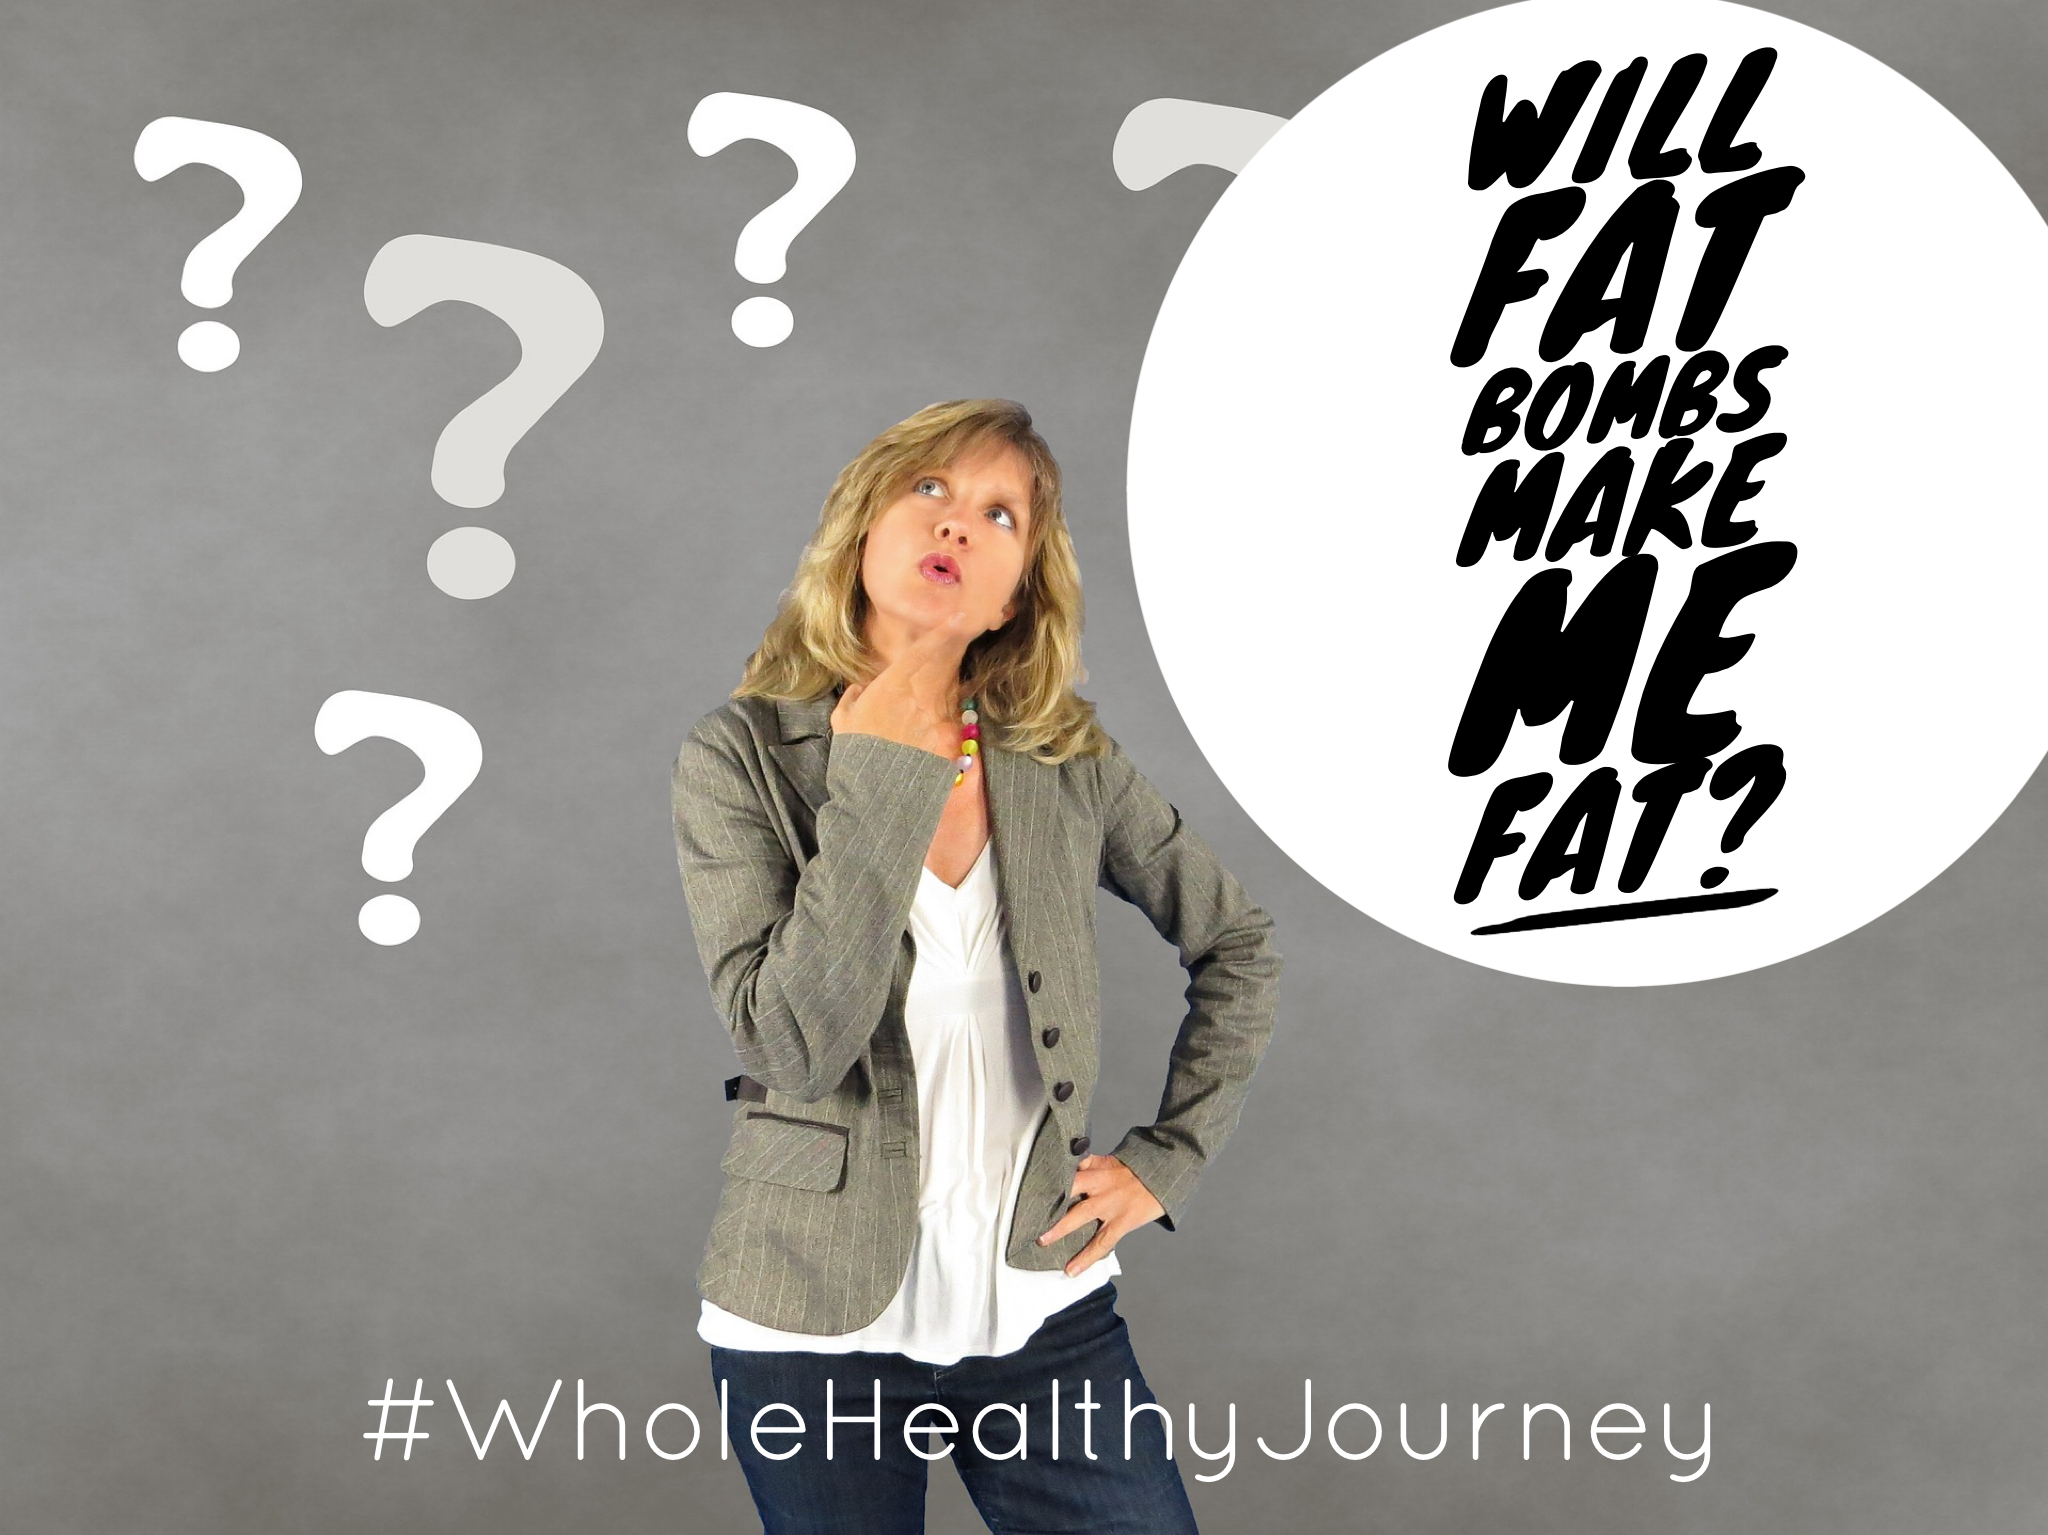 Whole Healthy Journey Fat Bombs